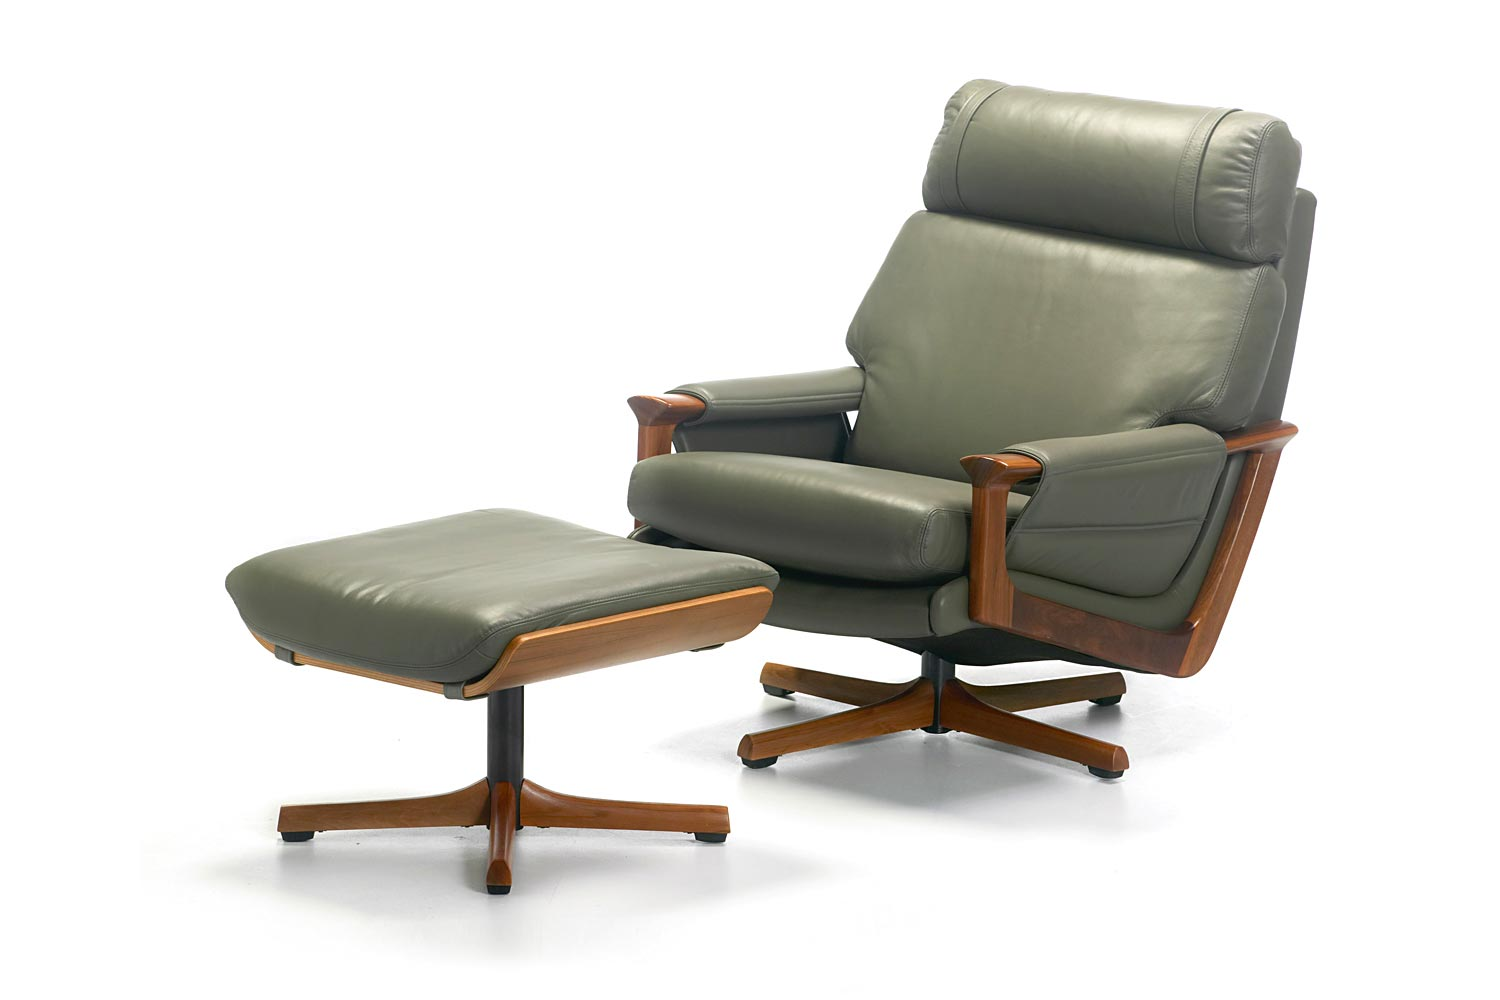 Wondrous T21 Suite Tessa Furniture Ncnpc Chair Design For Home Ncnpcorg